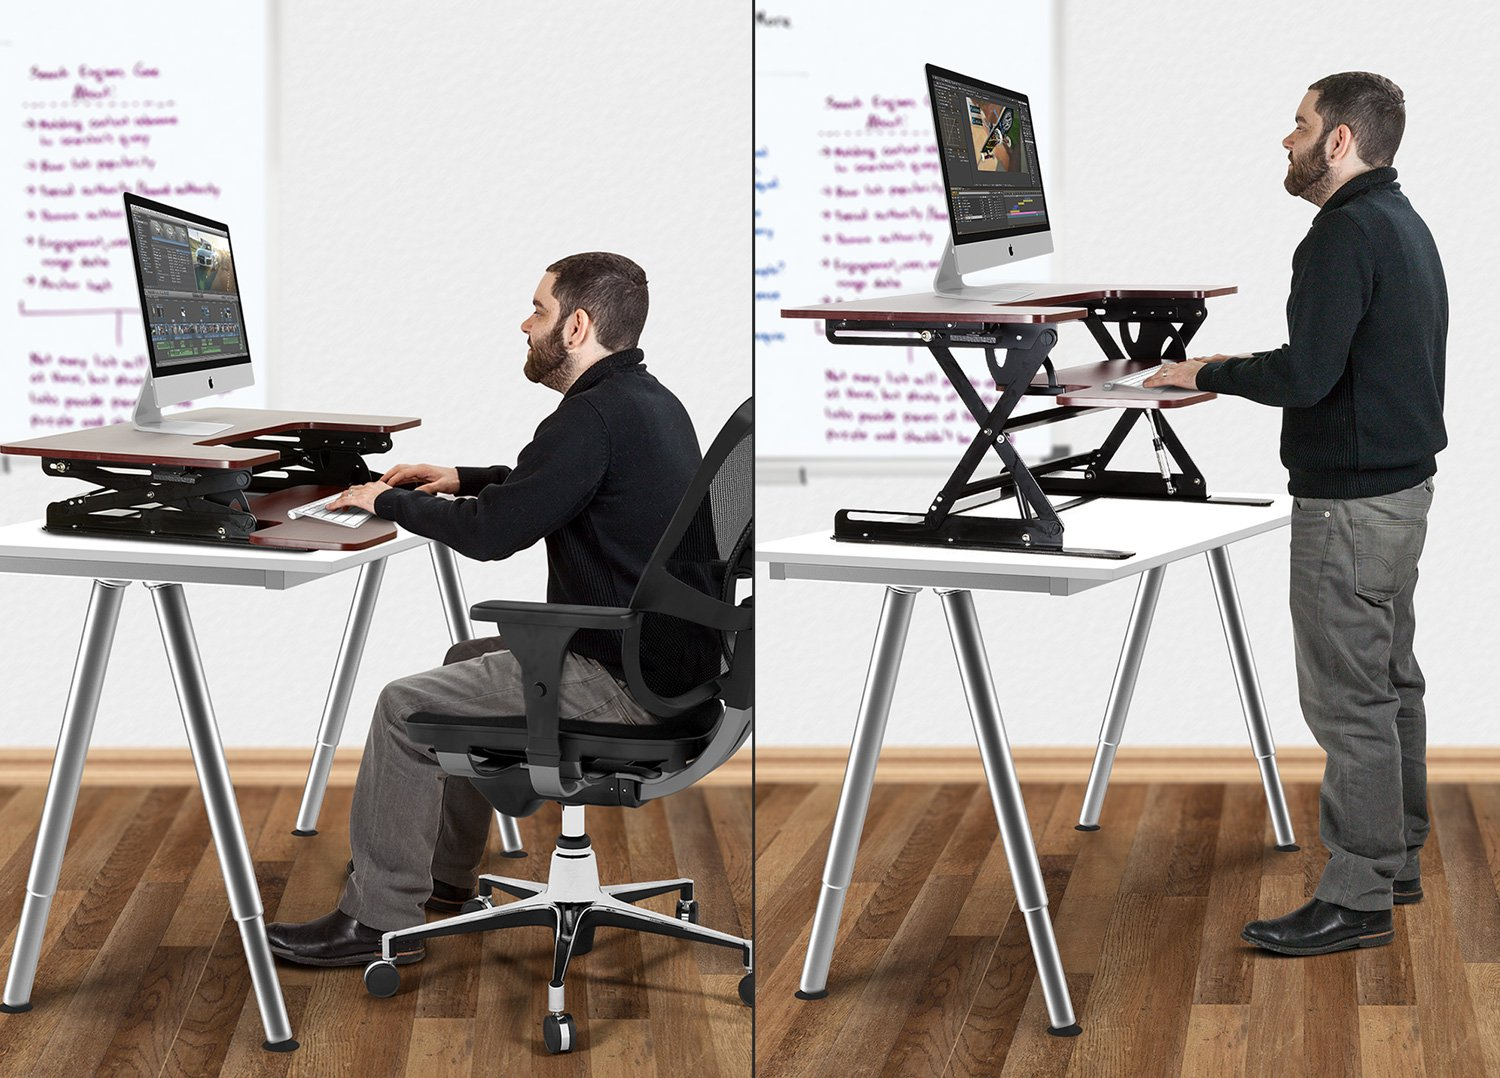 Halter ED-259 Preassembled Height Adjustable Desk Sit / Stand Elevating Desktop with 2 Power Outlets and 2 USB Charging Ports by Halter (Image #6)